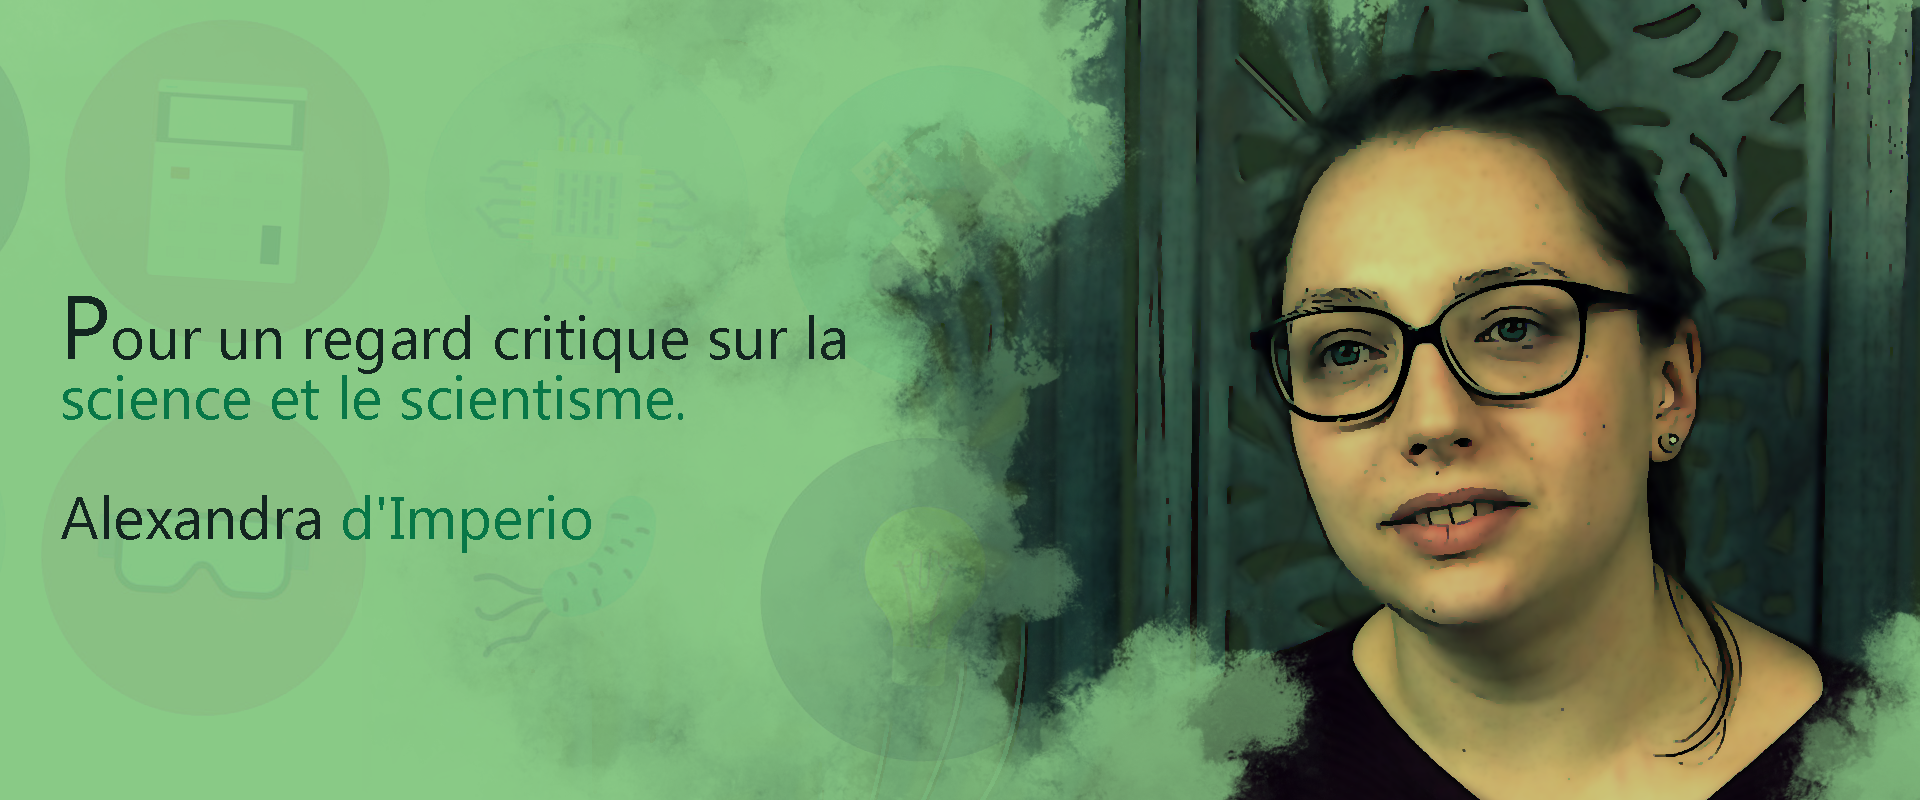 Pour un regard critique sur la science et le scientisme – Alexandra d'Imperio